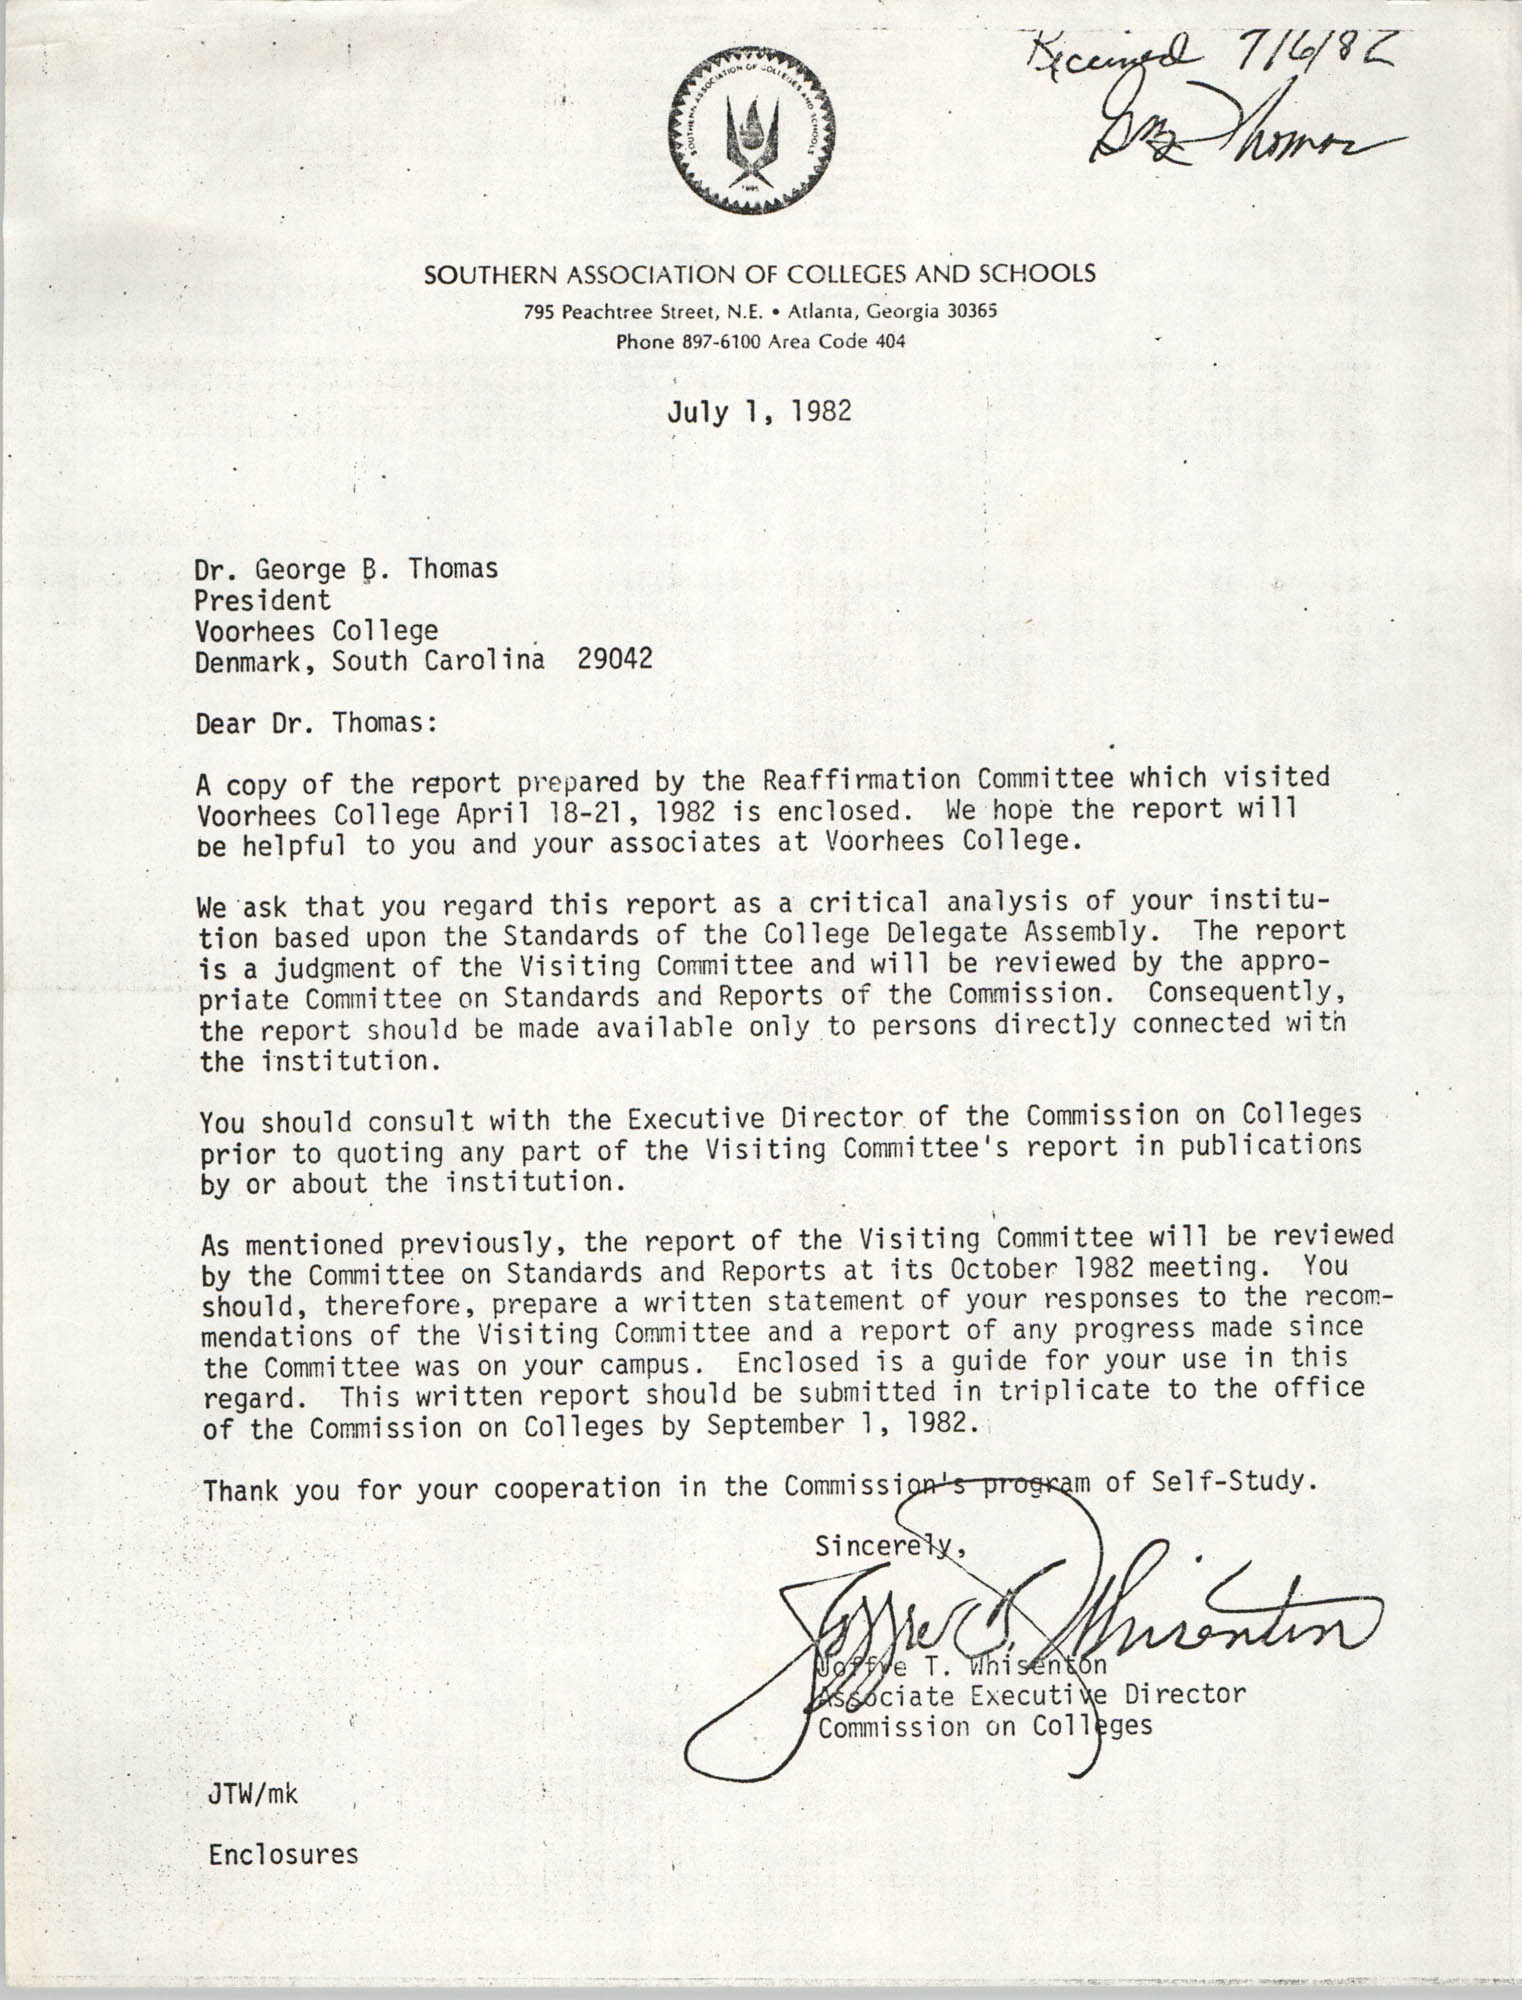 Letter from Joffre T. Whisenton to George B. Thomas, July 1, 1982